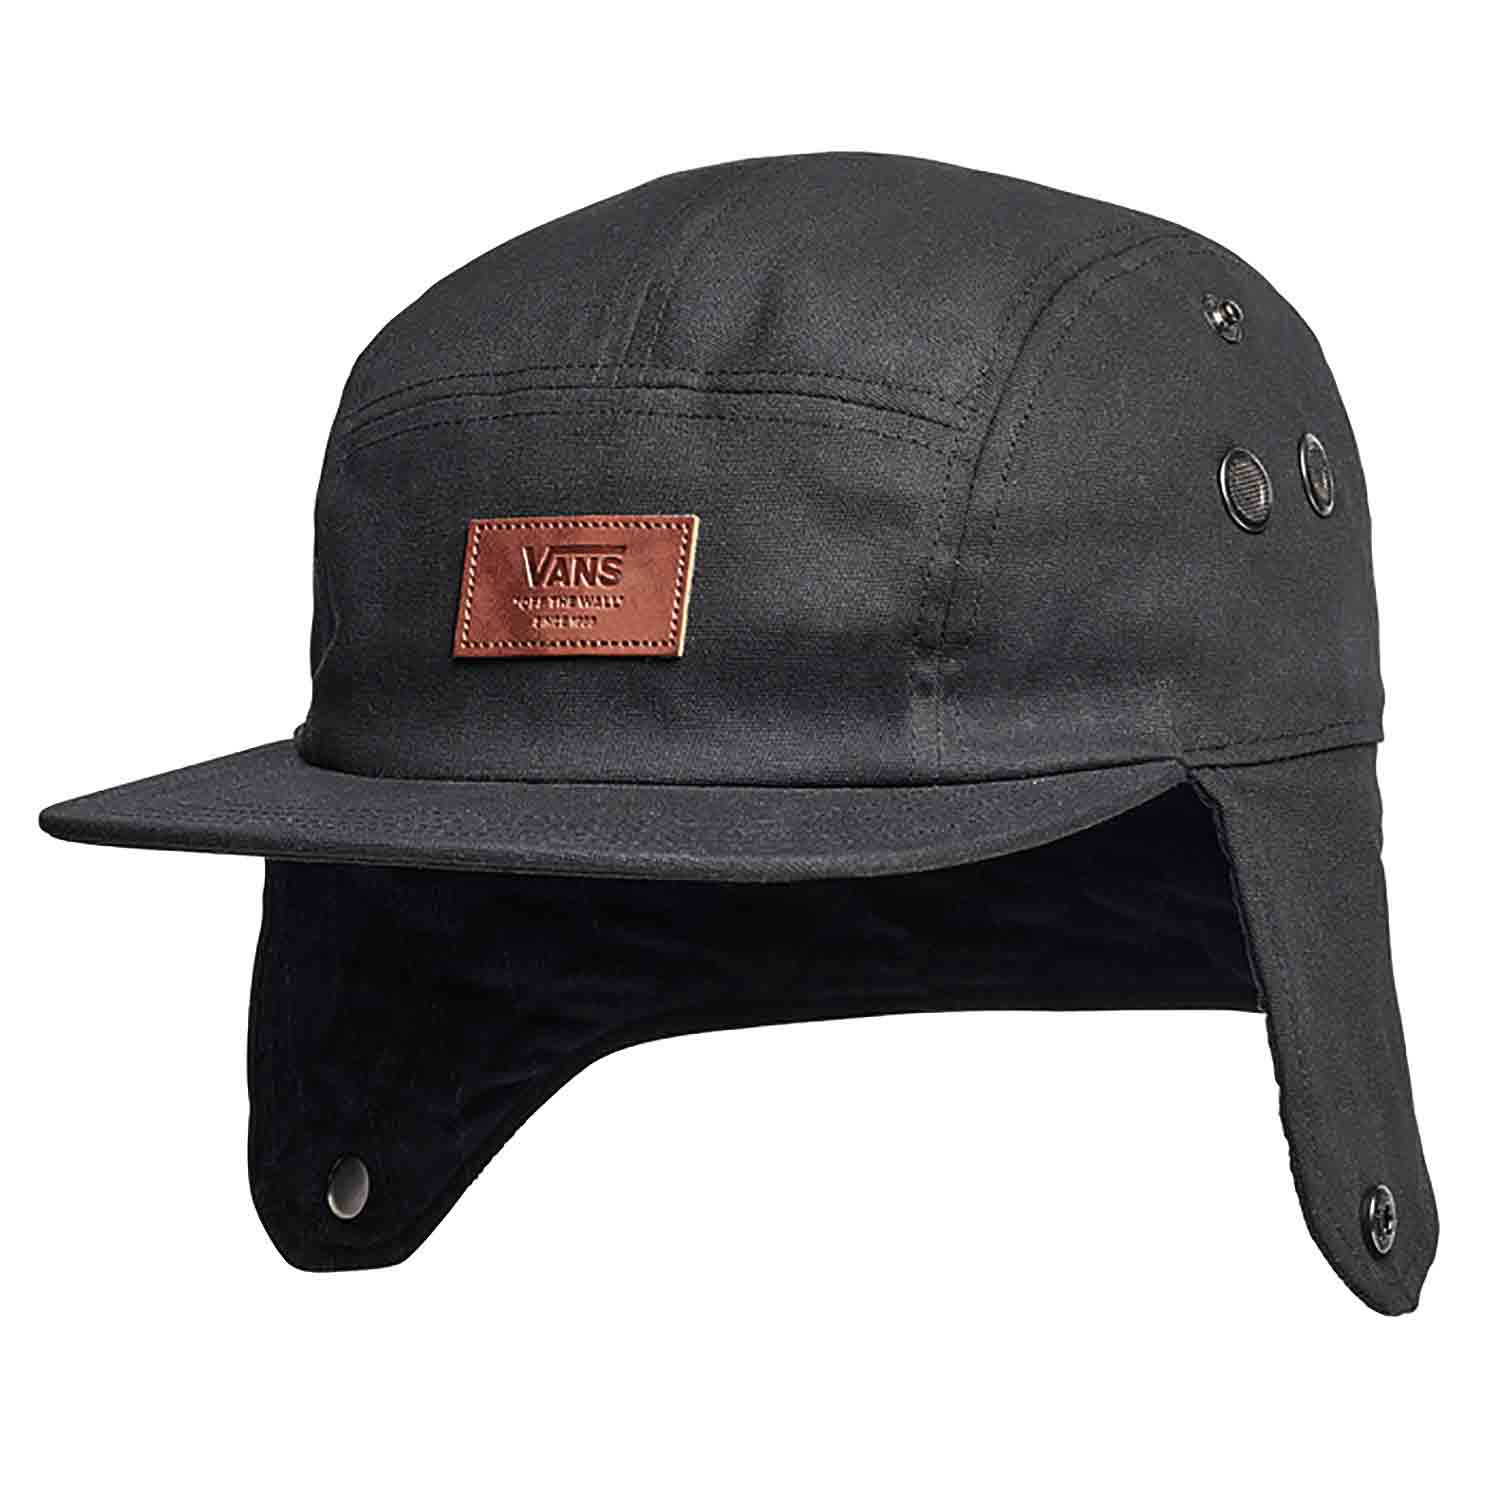 Vans Flap 5 Panel Camper Mens Headwear Cap - Black One Size  f5af0ac2fe7